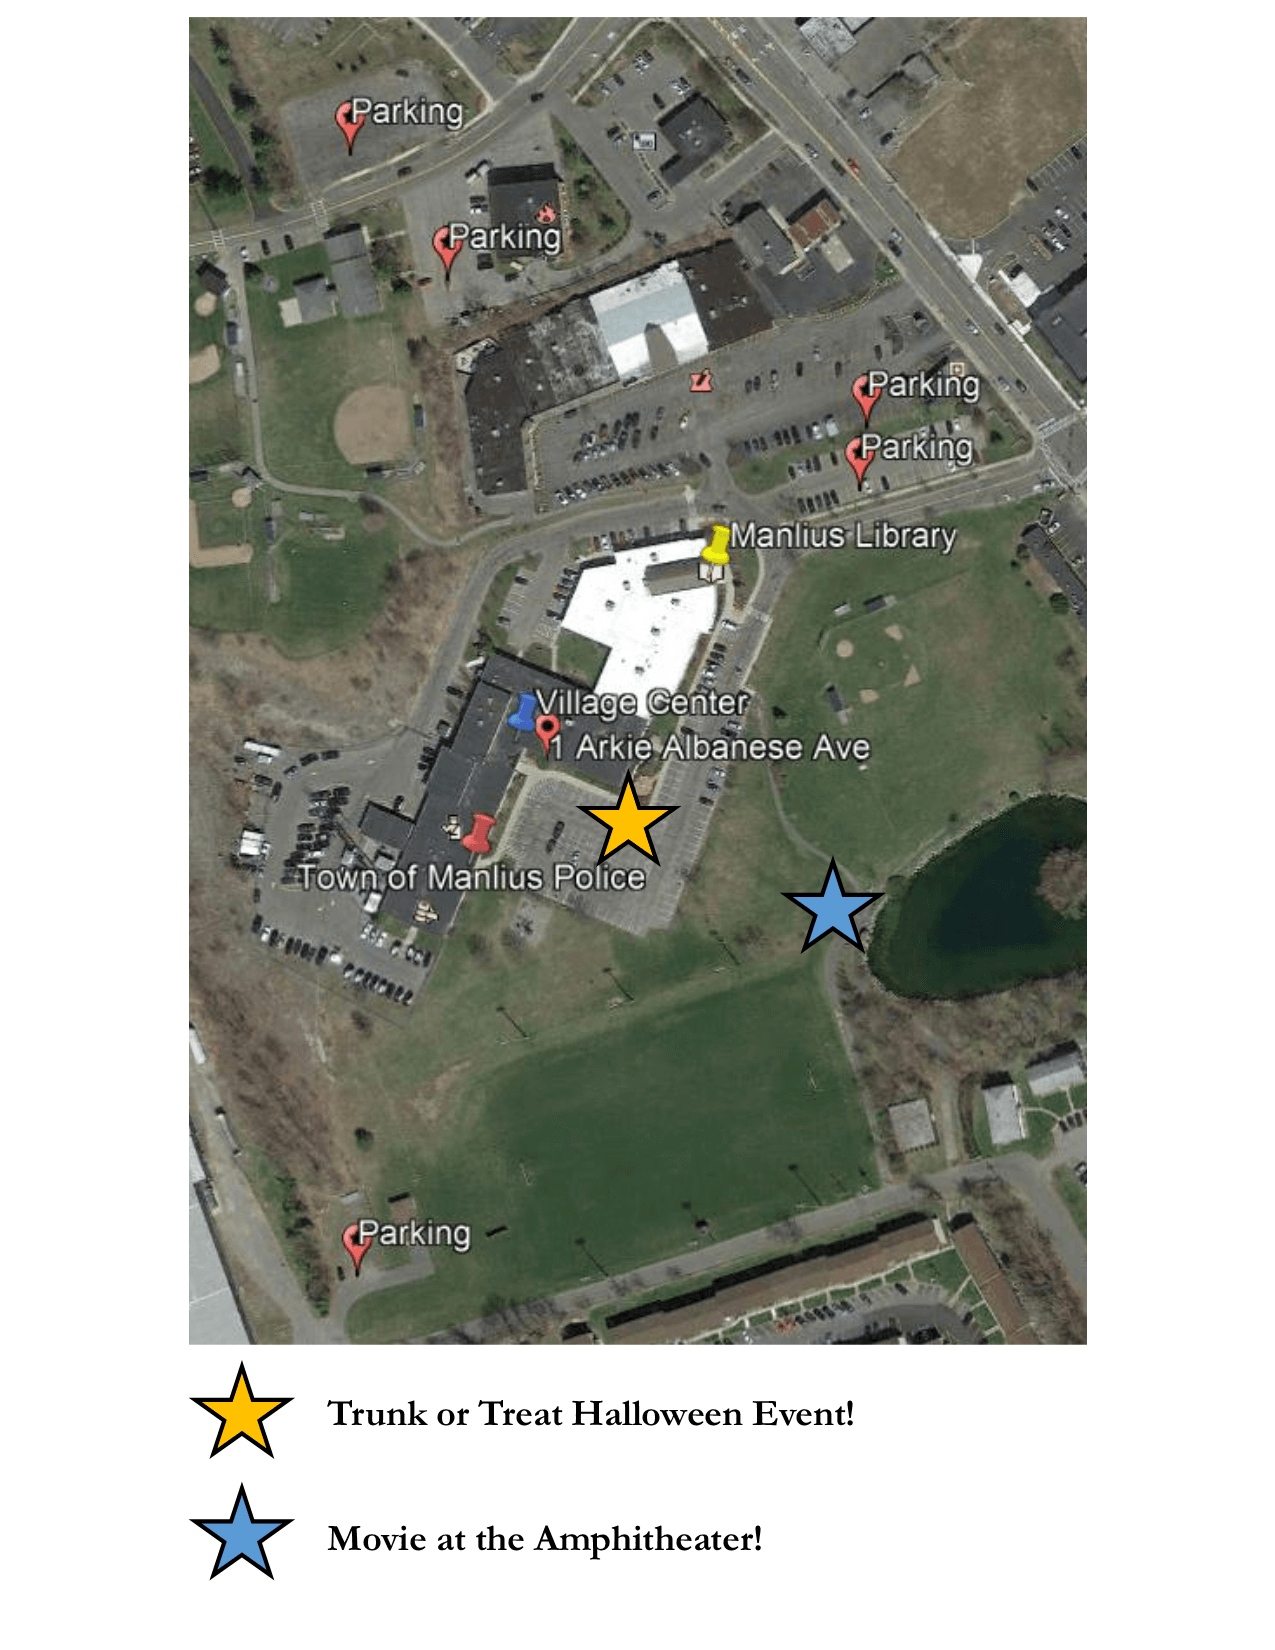 Parking for Trunk or Treat